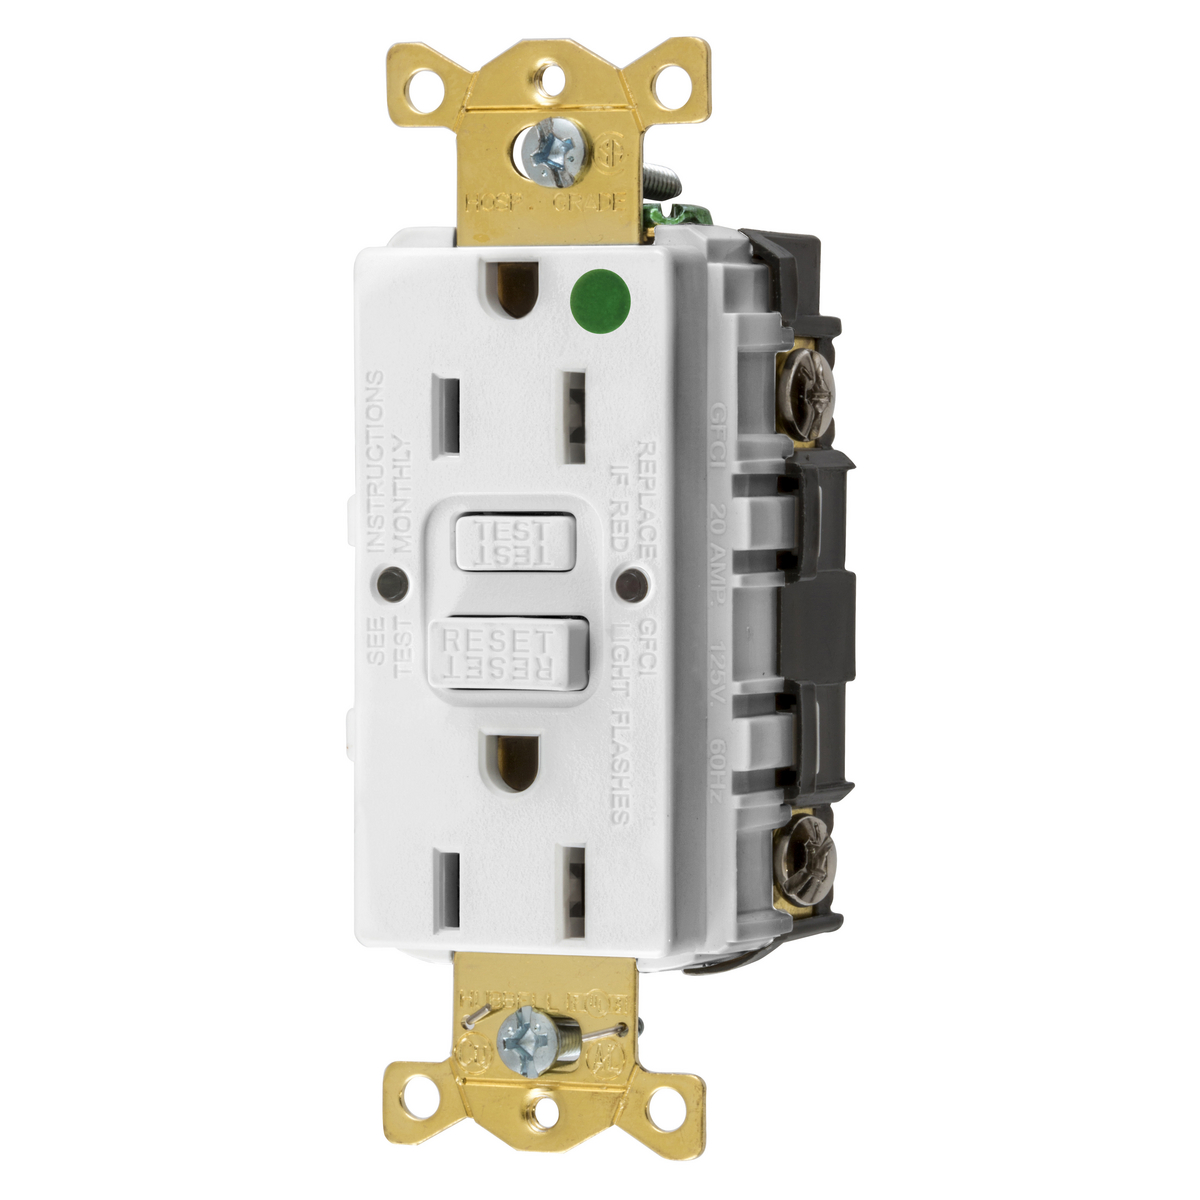 Hubbell GFRST82W15A COMM HG SELF TEST GFR WHITE